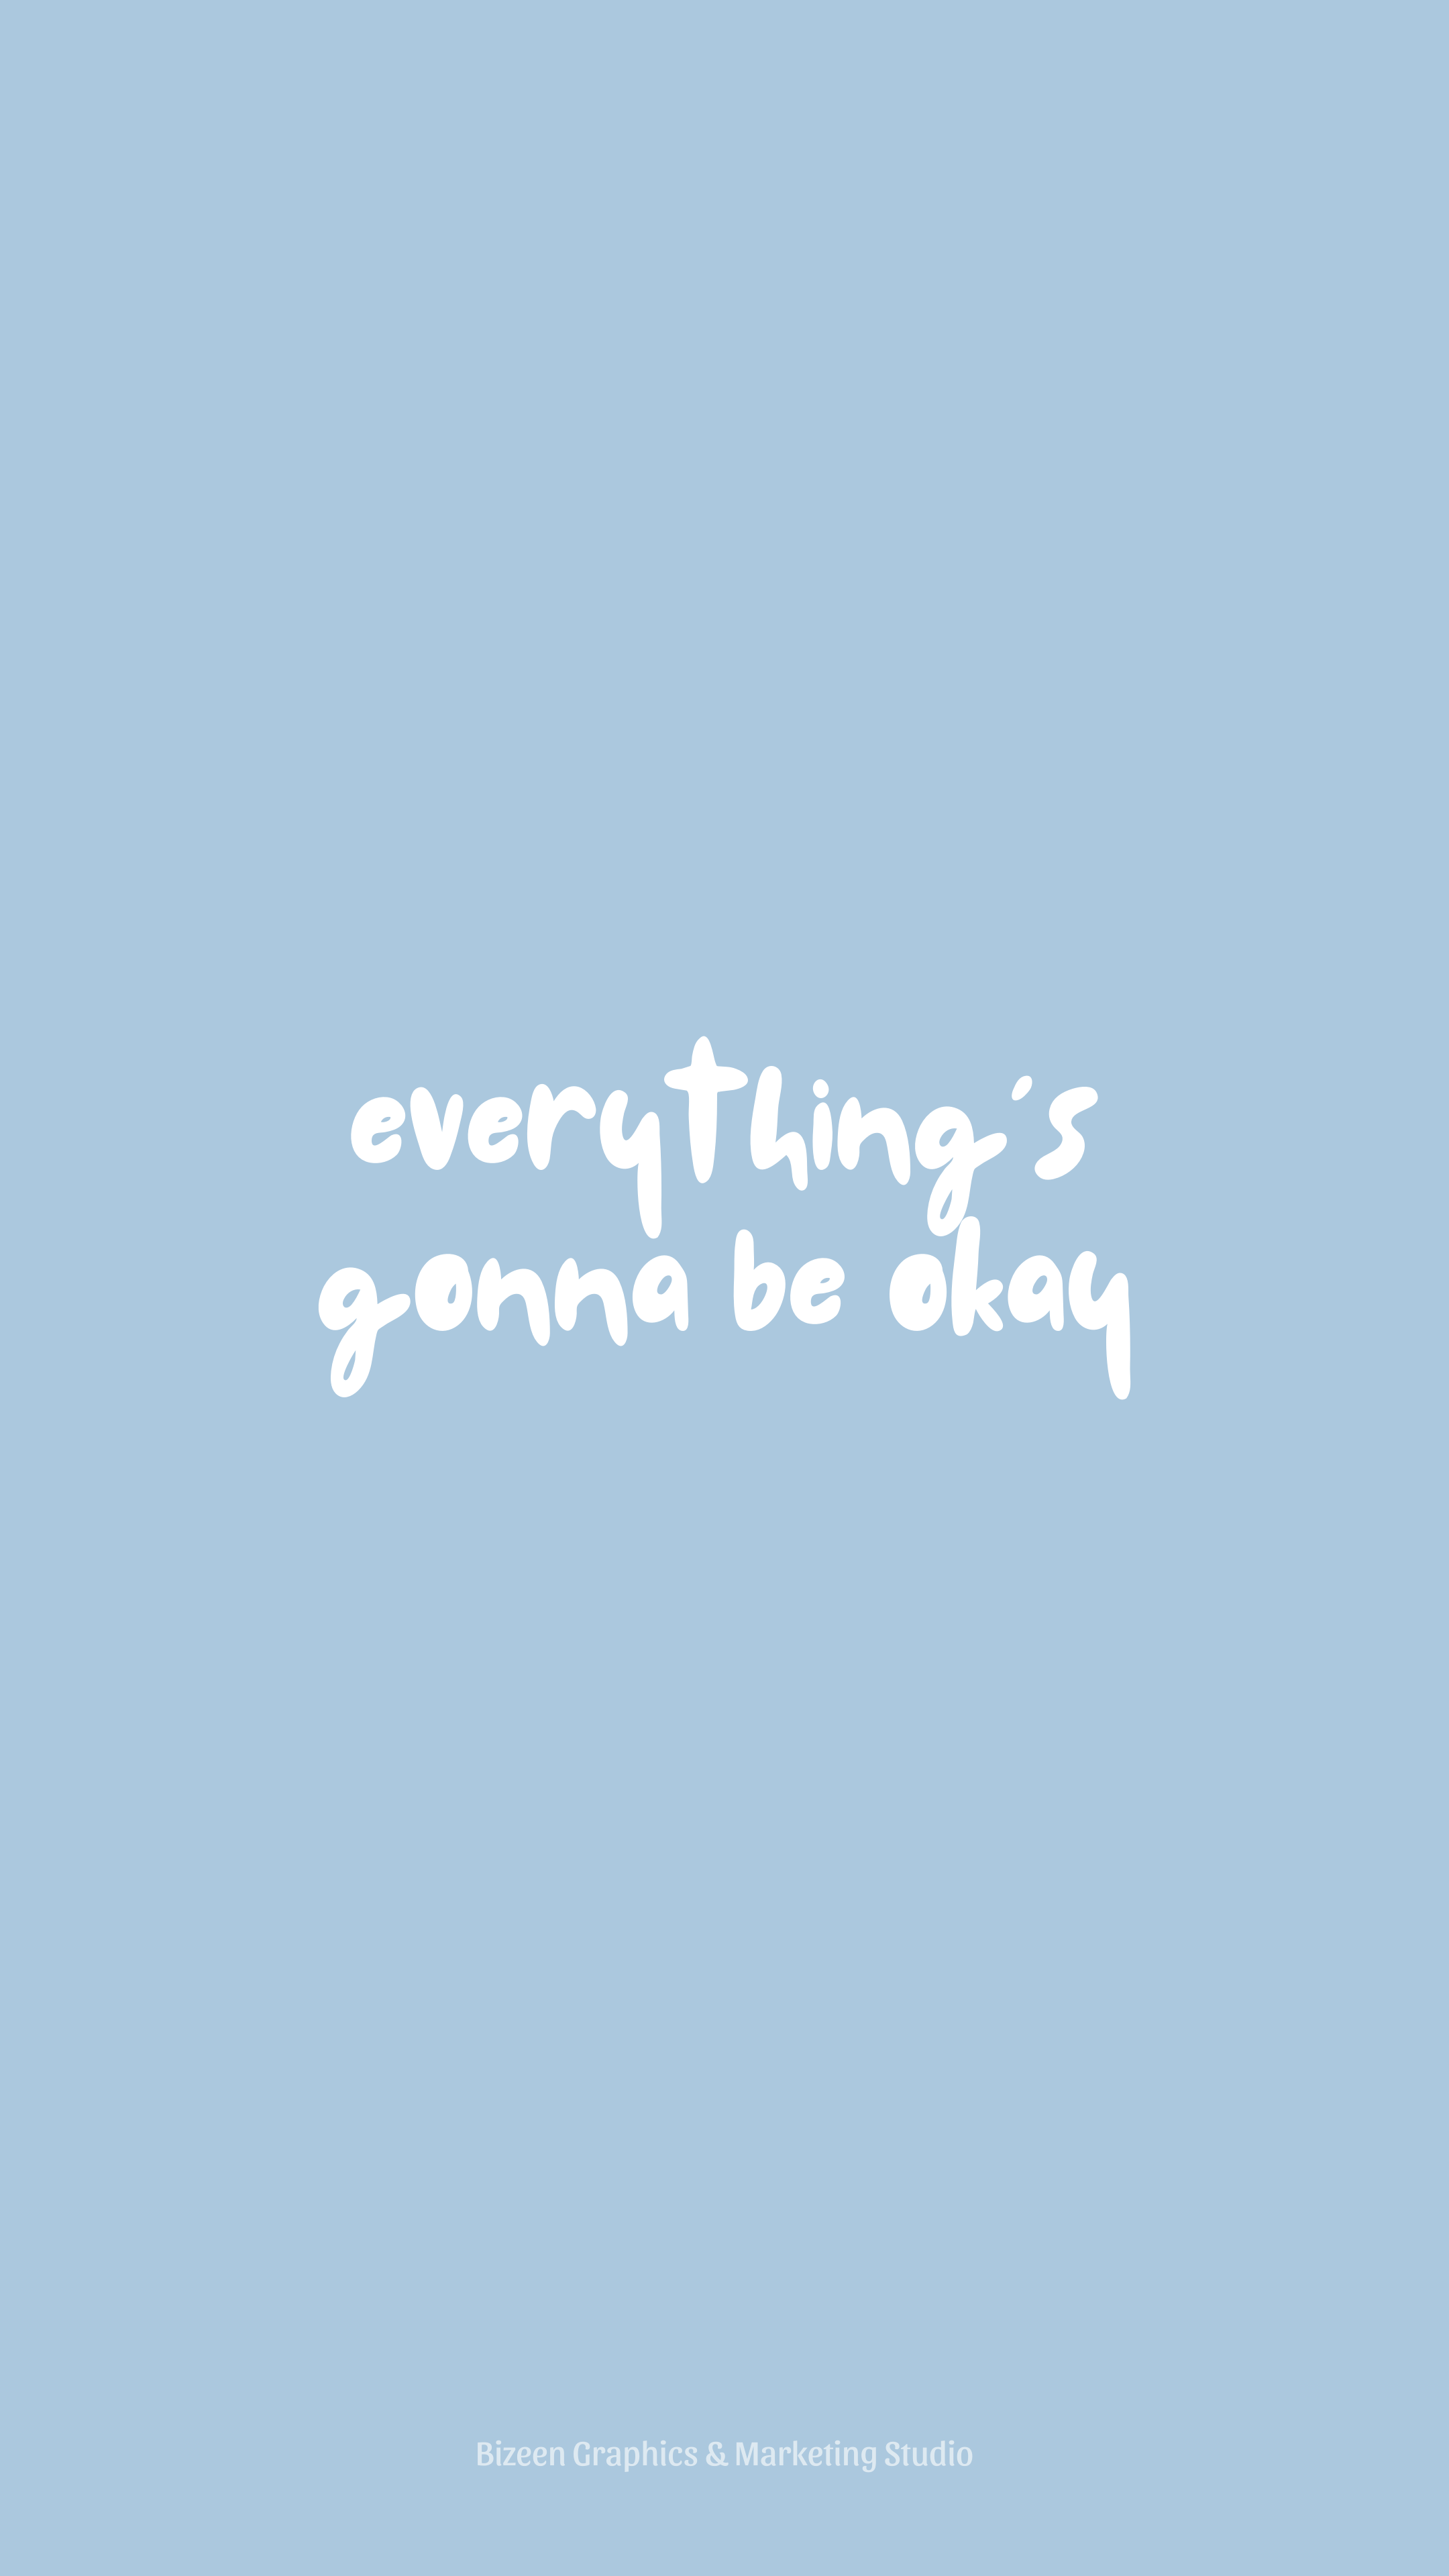 Pastel Blue Aesthetic Wallpaper Quotes Everything S Going To Be Okay In 2021 Blue Quotes Baby Blue Quotes Wallpaper Quotes